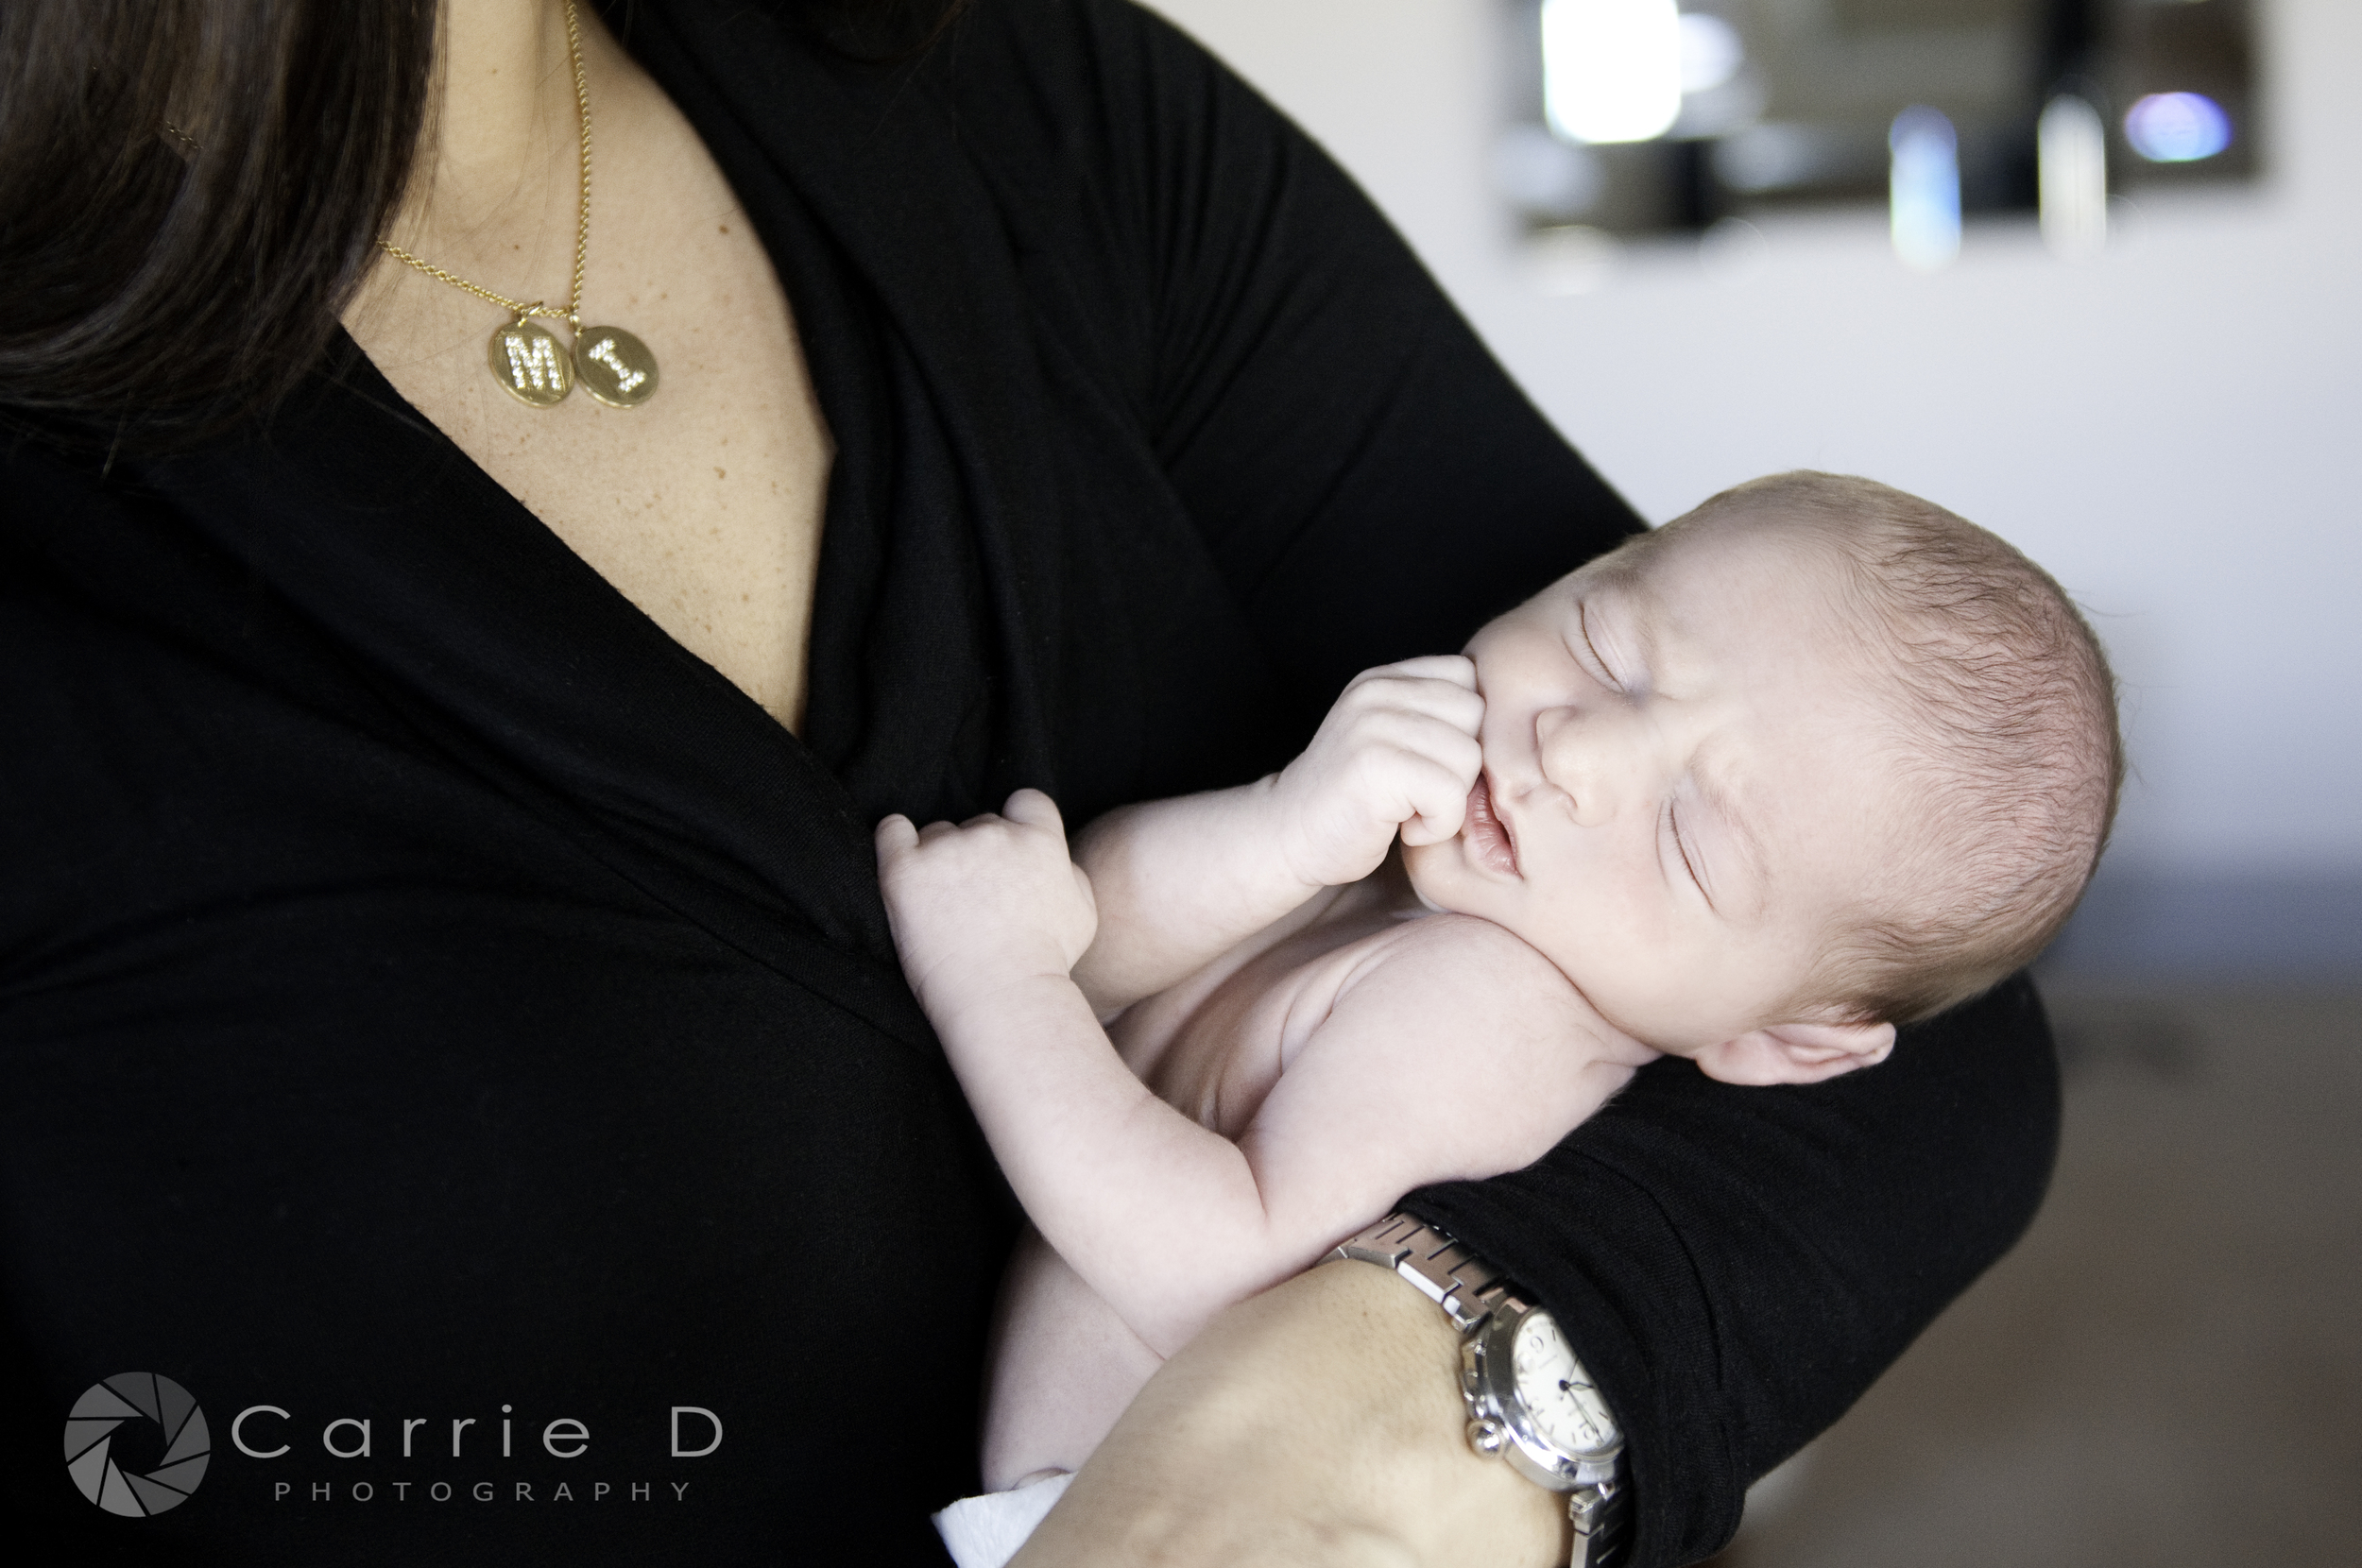 Baltimore Newborn Photographer, Baltimore Family Photographer, Baltimore Natural Light Photographer, Baltimore Newborn Natural Light Photographer, Lifestyle Photographer, Baltimore Lifestyle Photographer